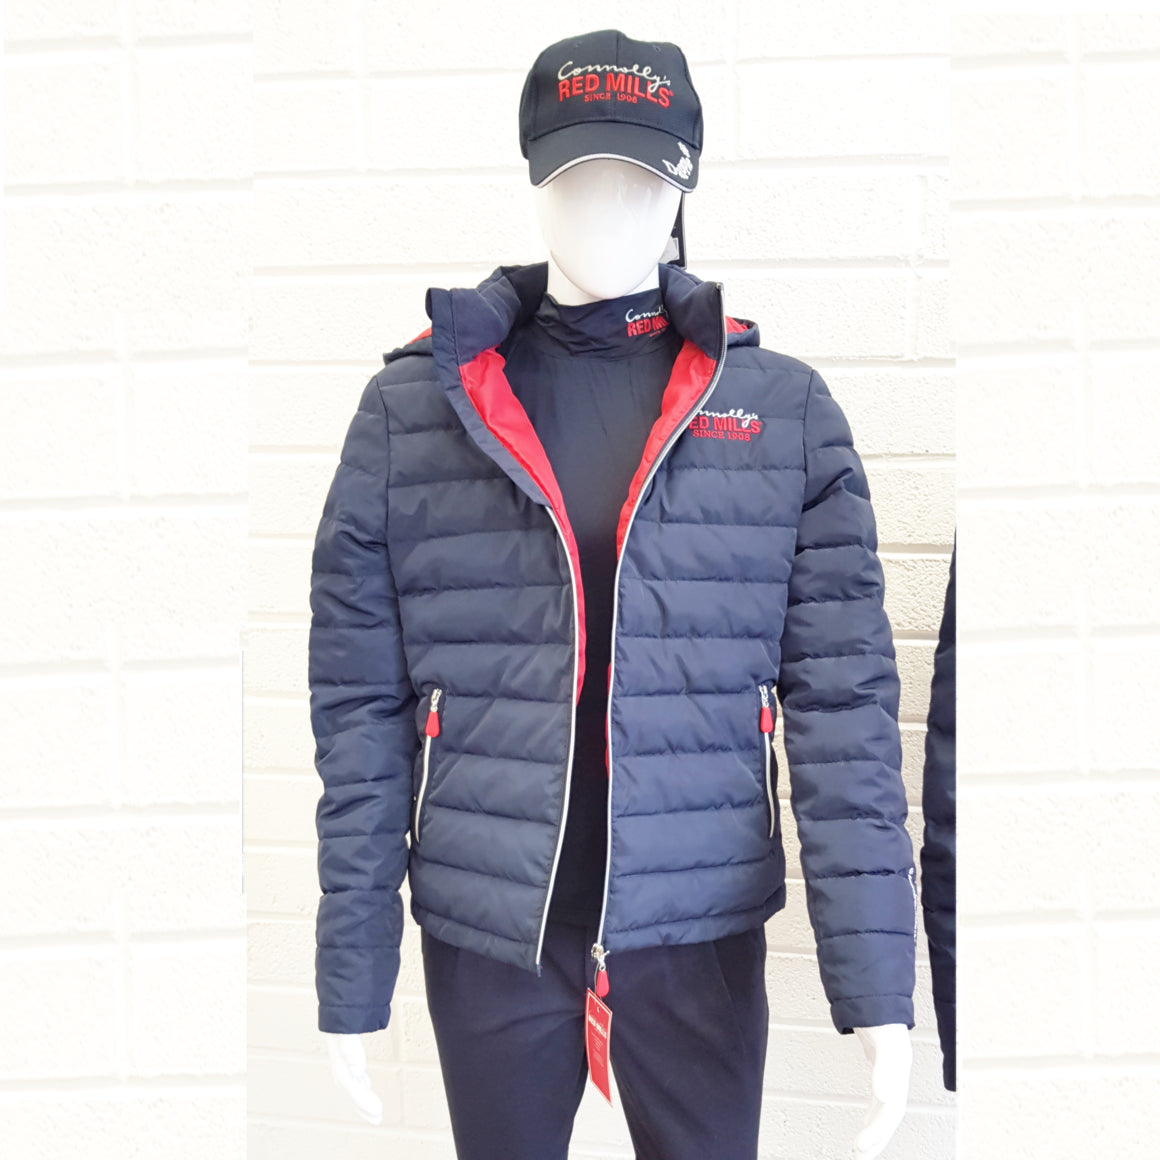 RED MILLS mens padded jacket with detachable hood